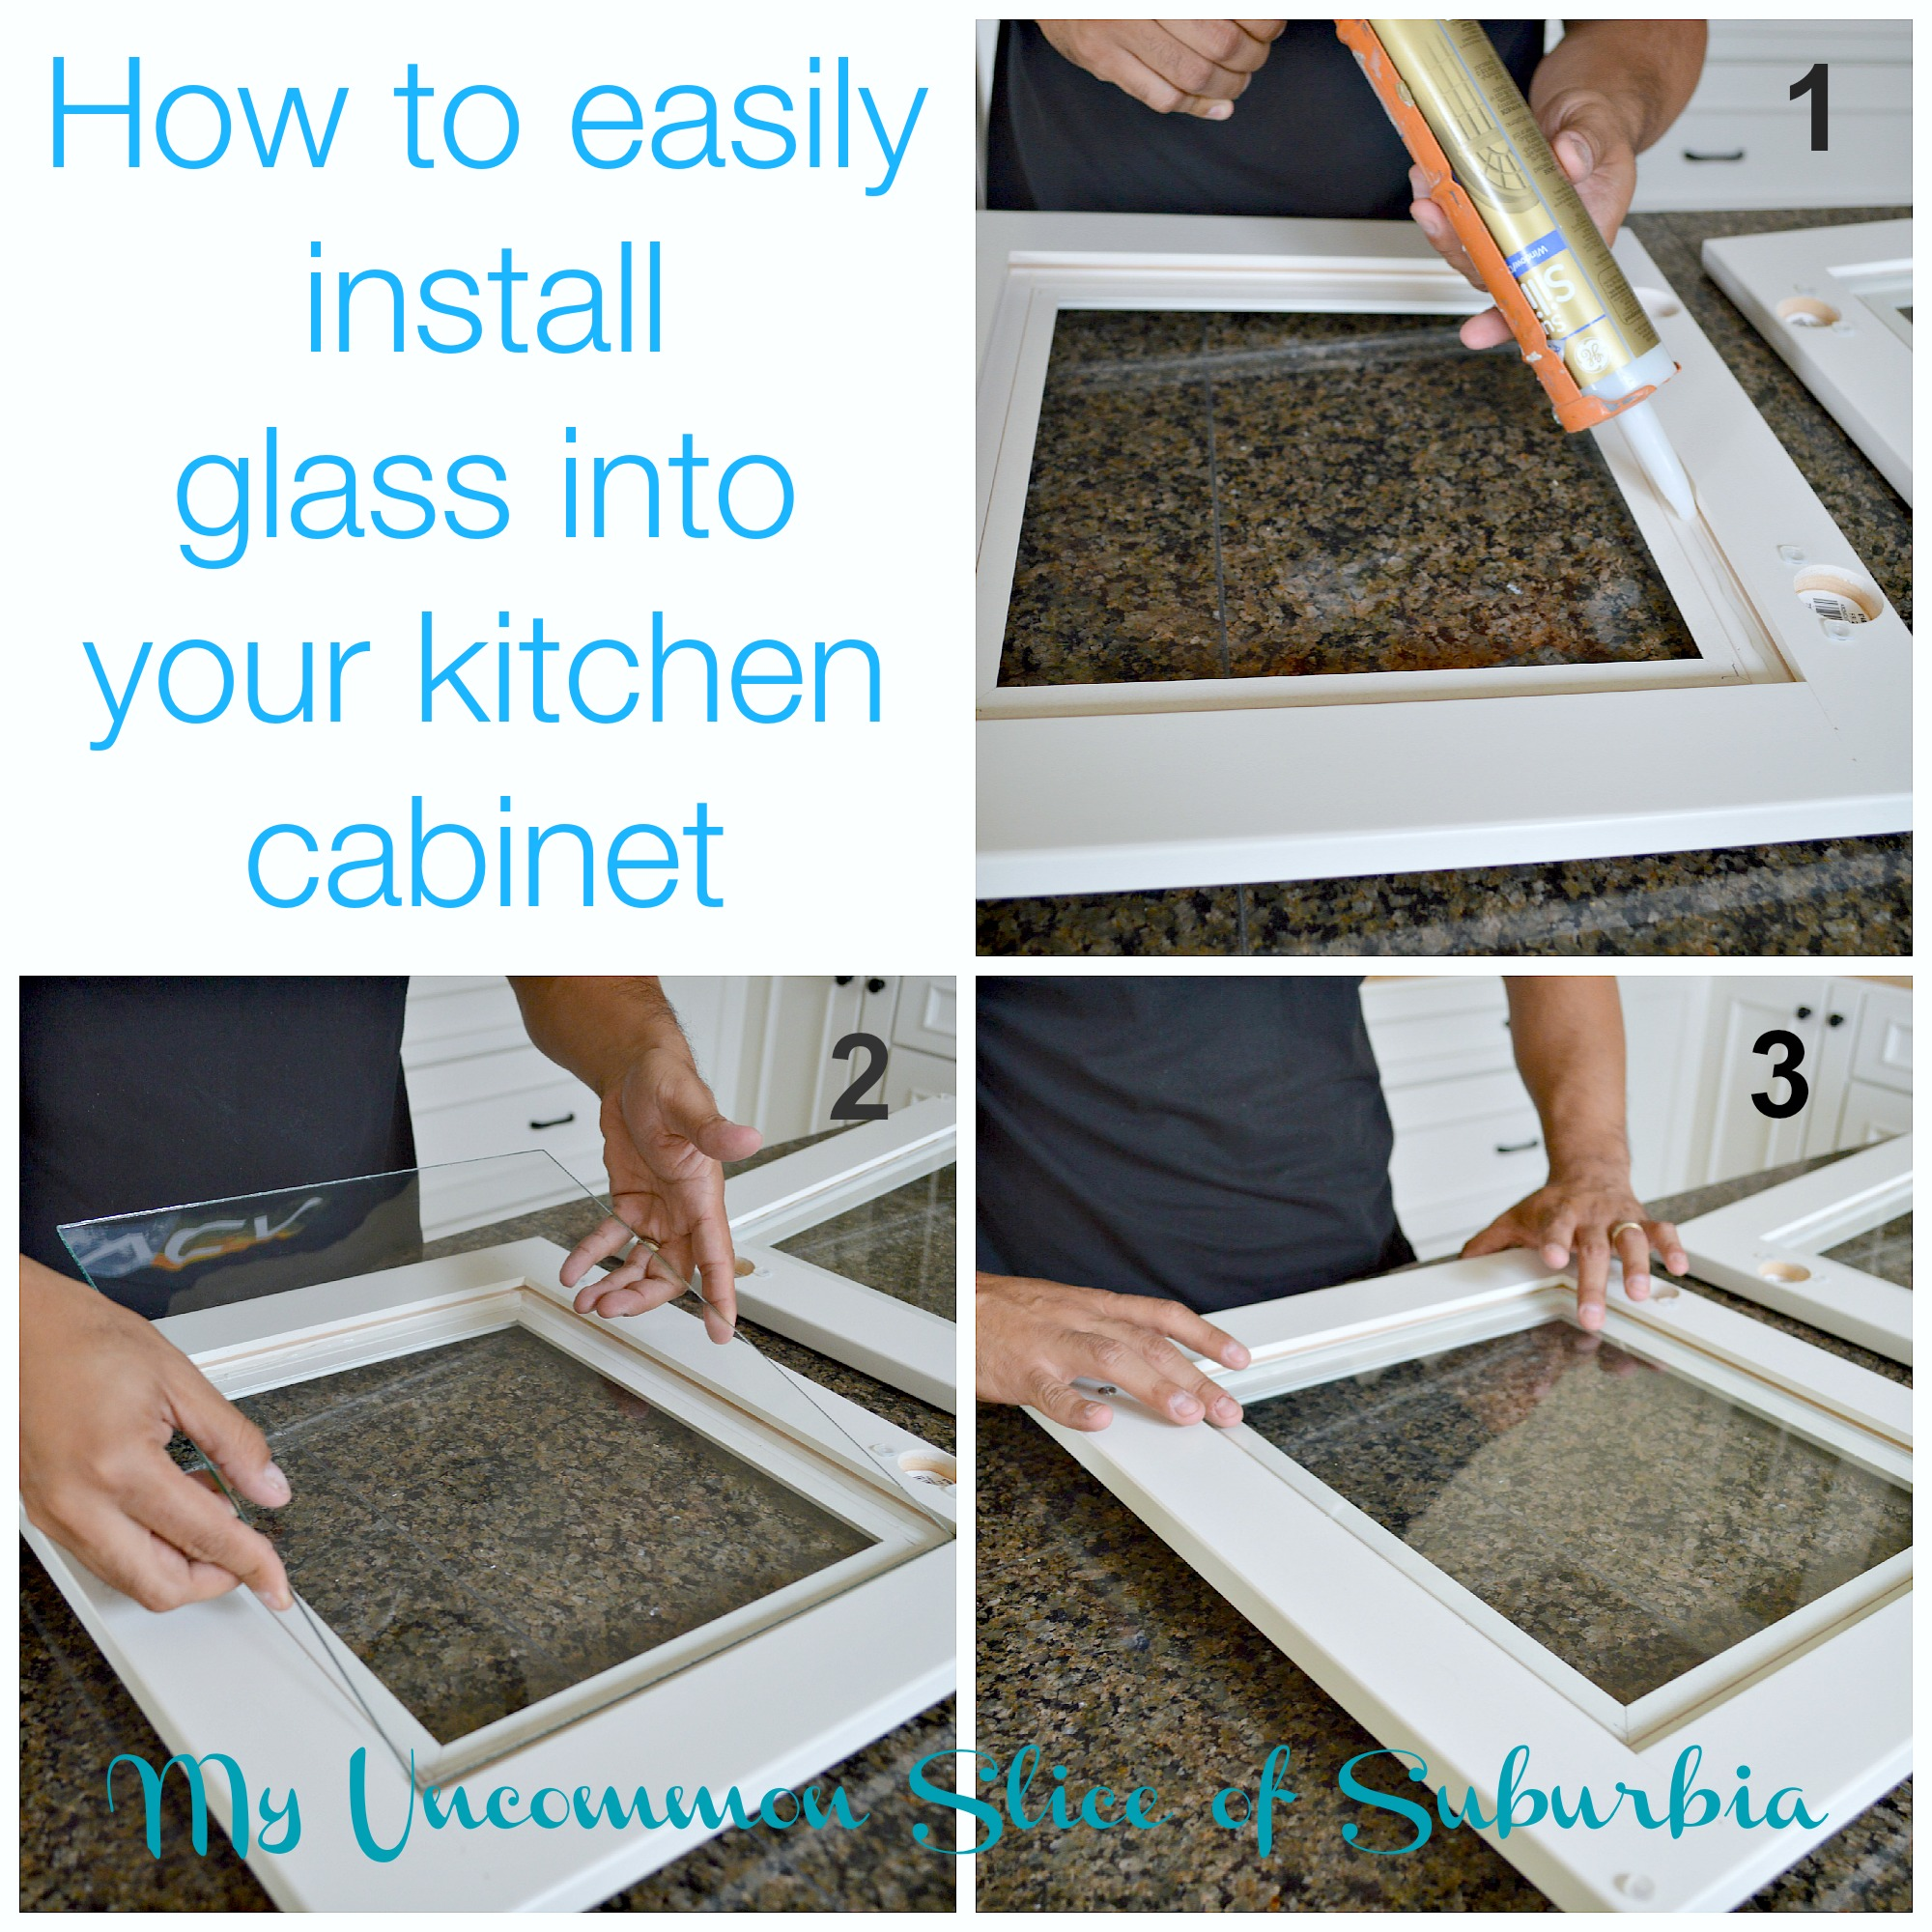 add glass inserts cabinets replacing kitchen cabinet doors door back up install glass into your kitchen cabinet